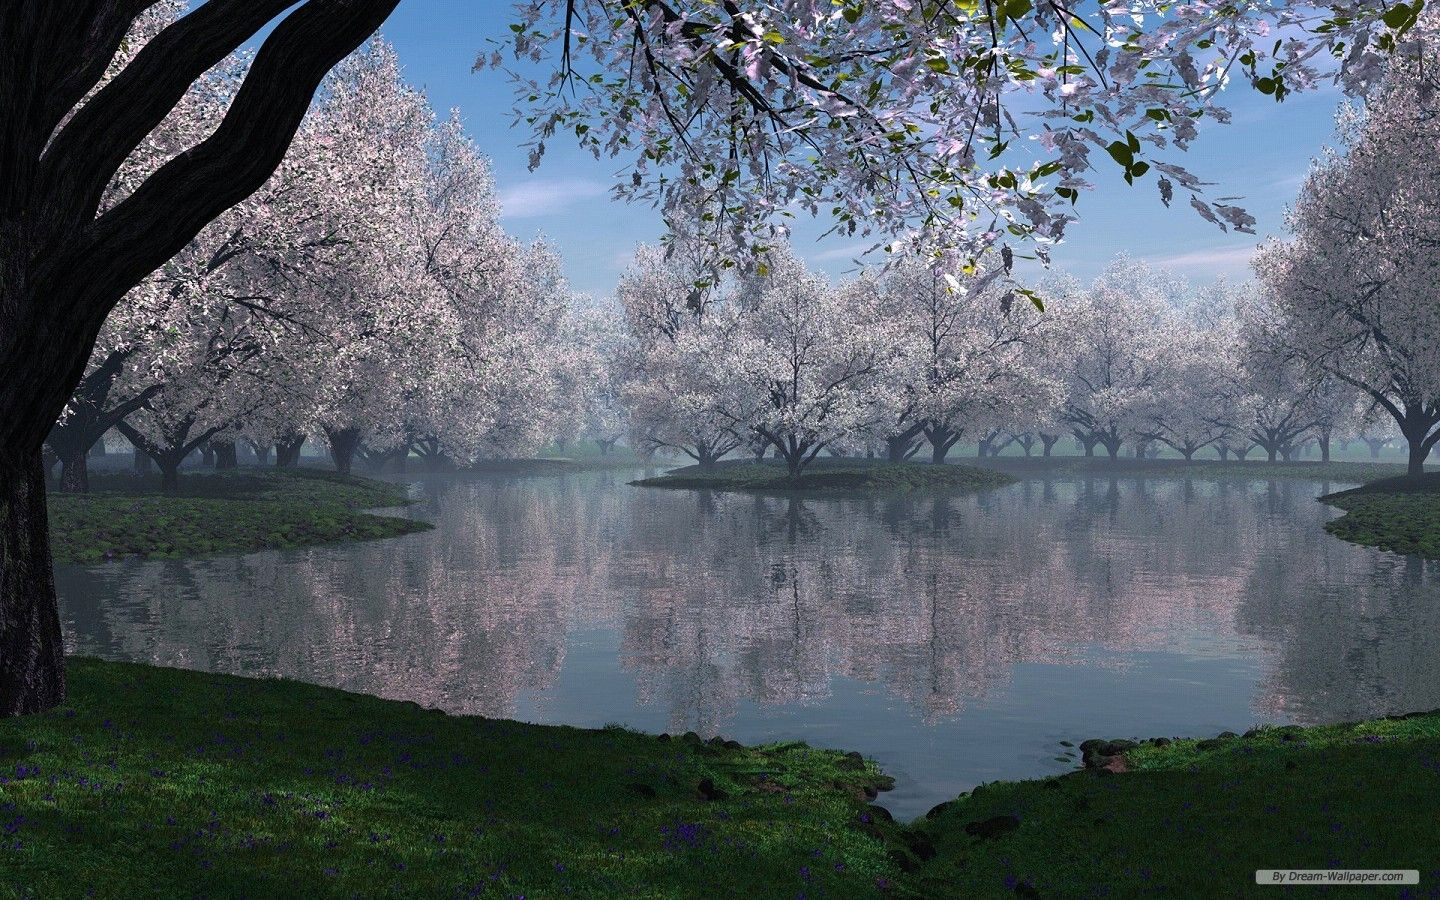 Landscape Desktop Backgrounds Wallpaper 3d Landscape Desktop 2 Wallpaper 1440x900 Spring Desktop Wallpaper Cherry Blossom Wallpaper Spring Wallpaper